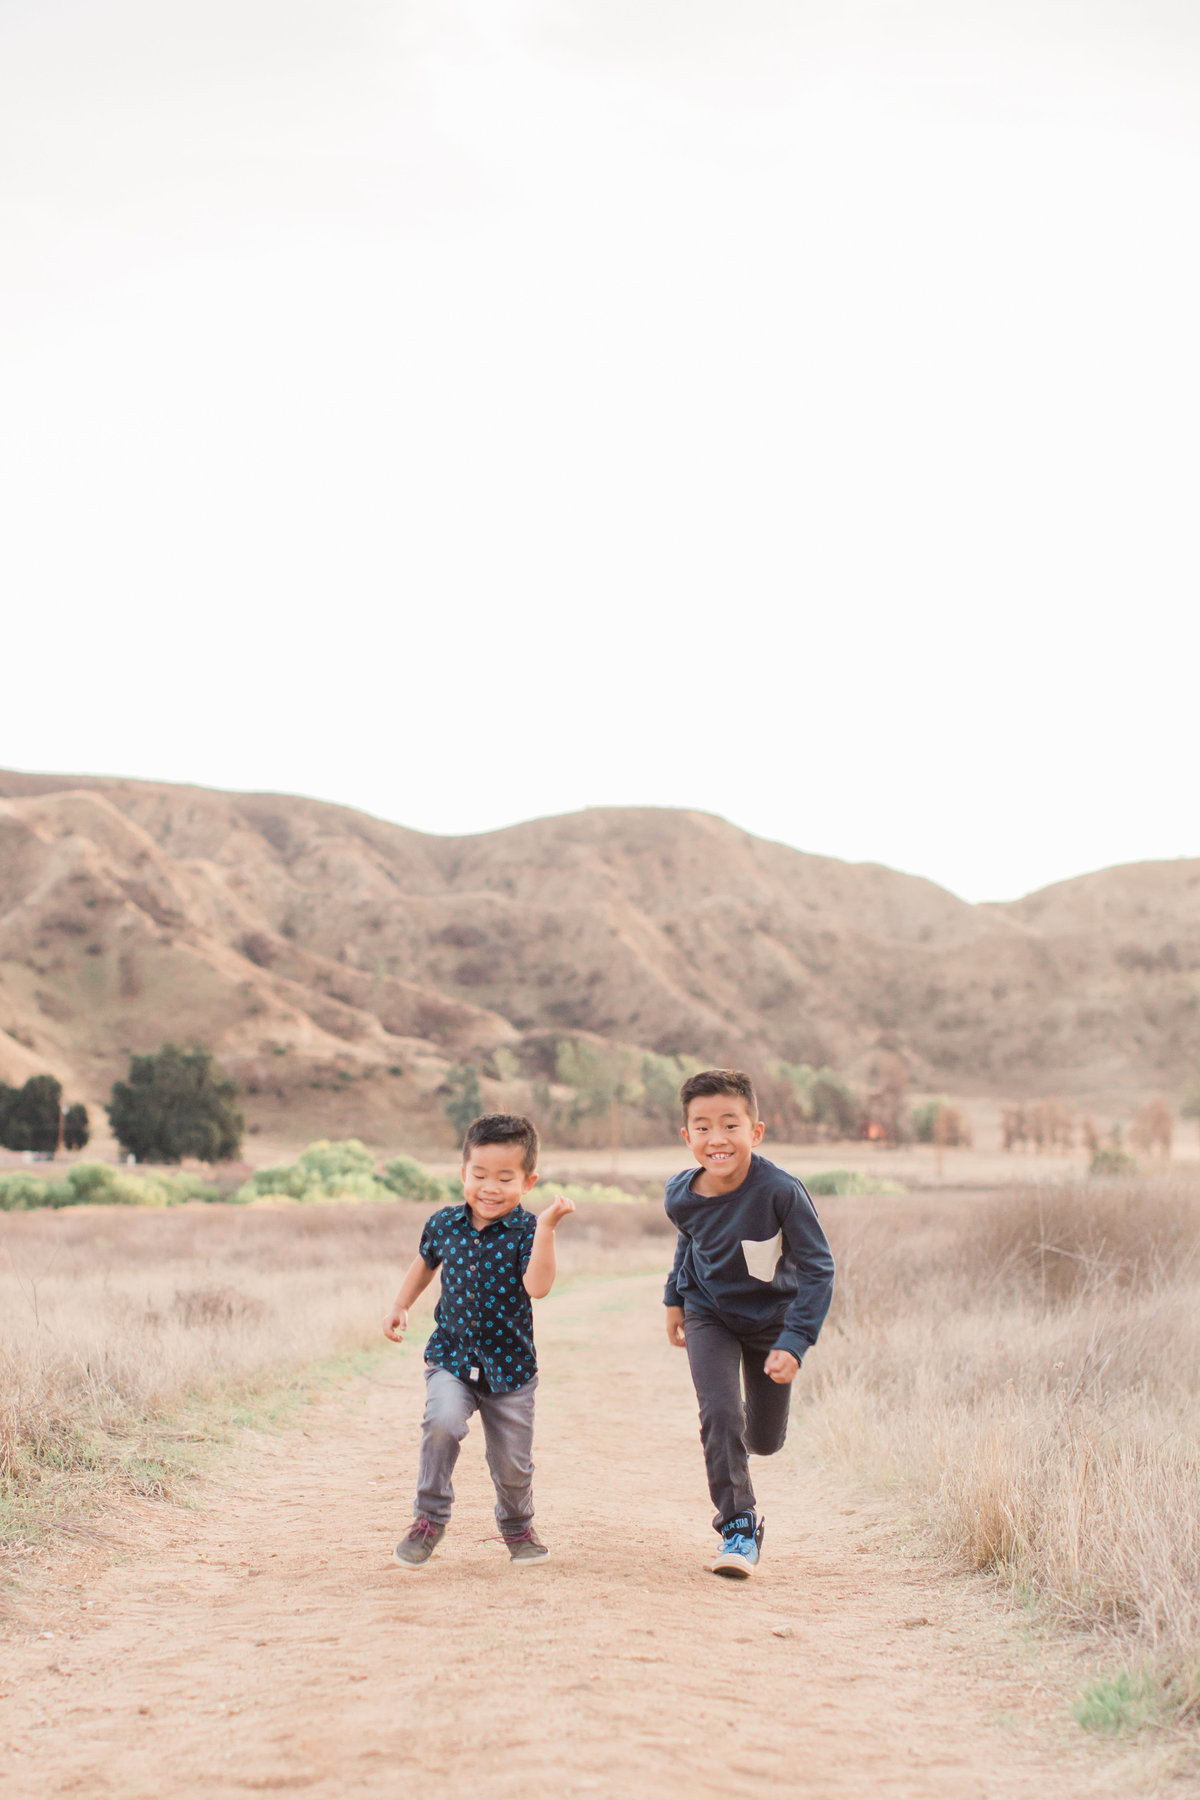 The Wong Family 2018 | Redlands Family Photographer | Katie Schoepflin Photography77